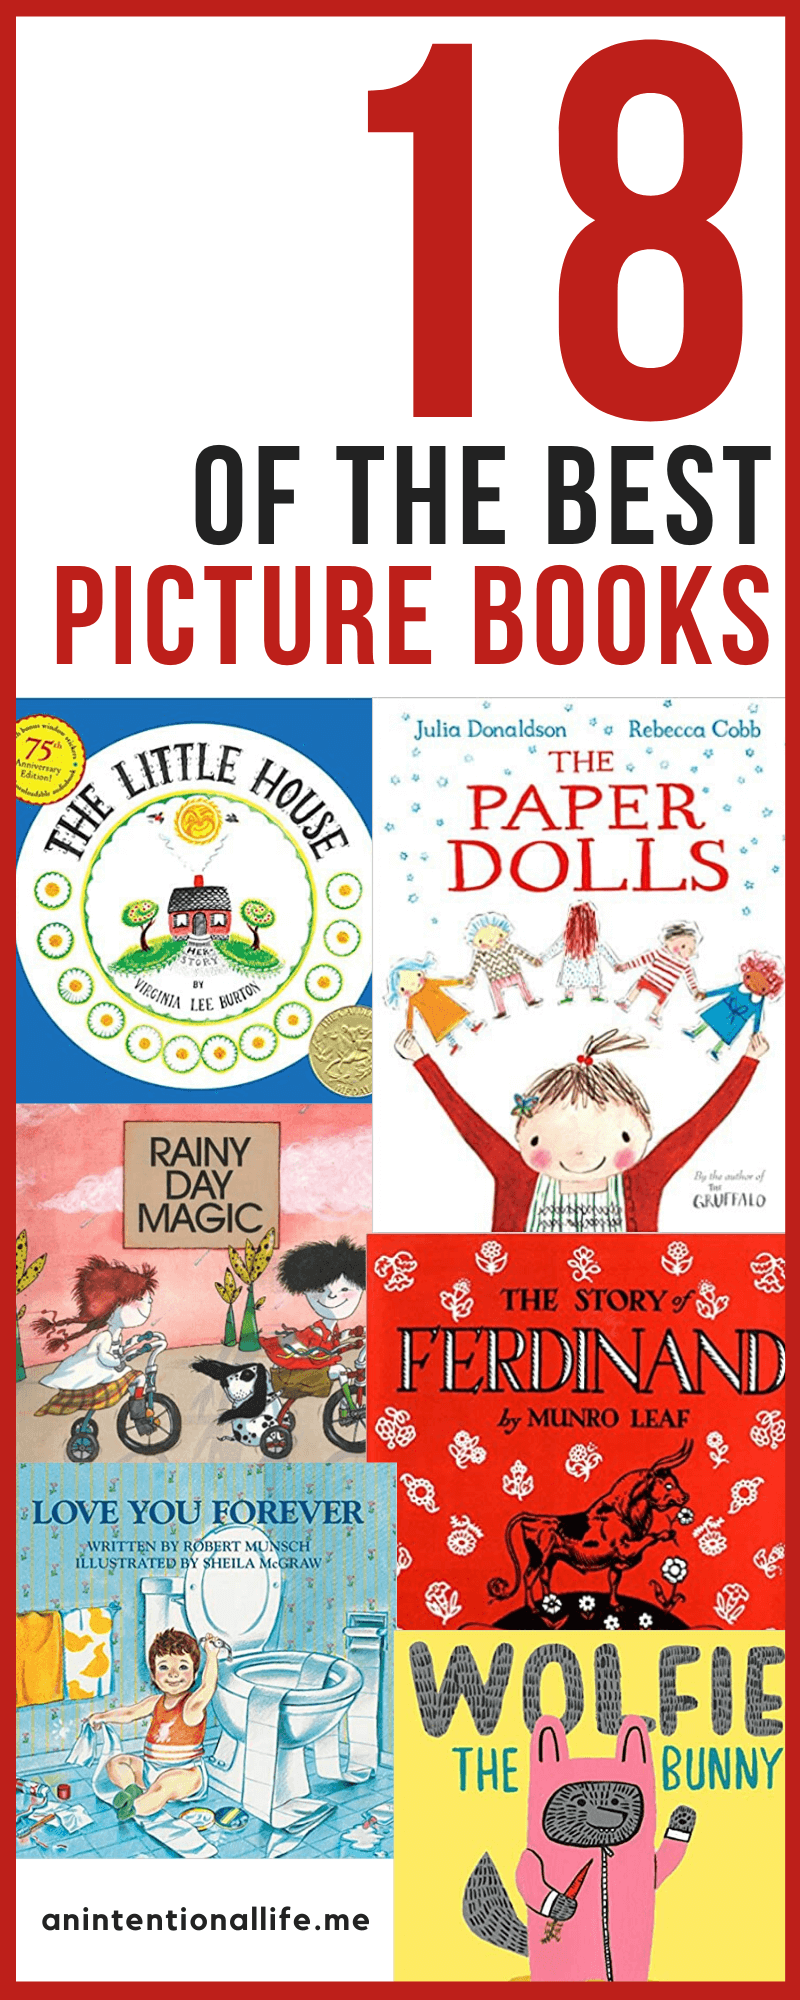 OThe Best Picture Books for Toddlers, Preschoolers and School Aged Children